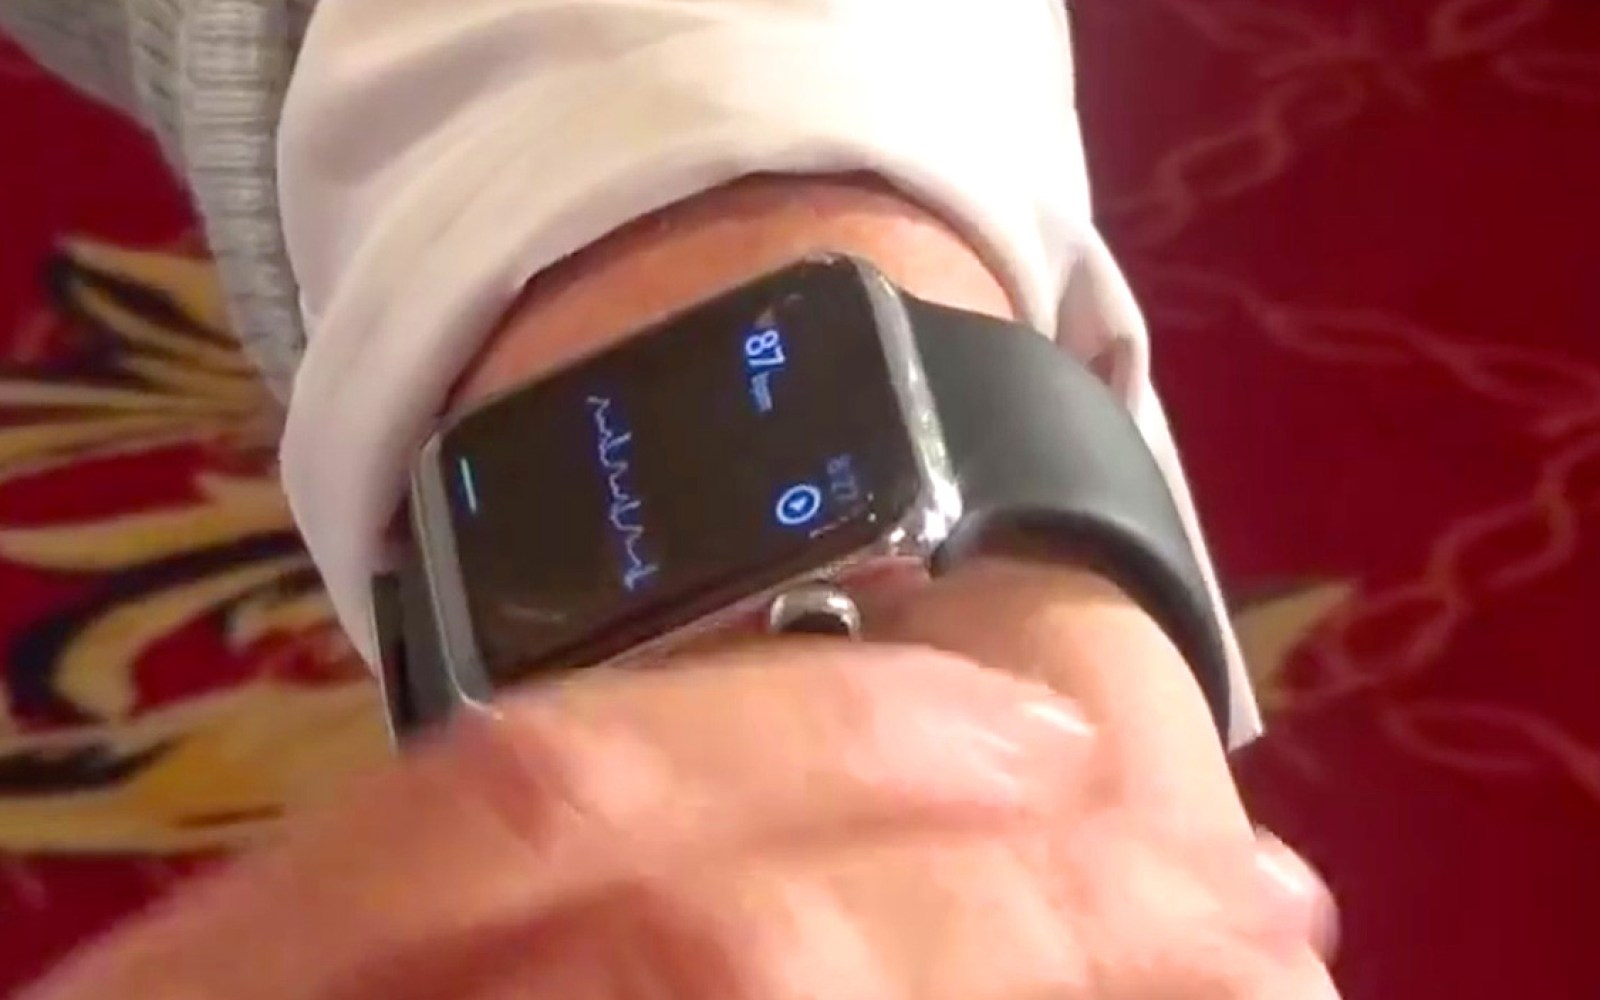 AliveCor shows Apple Watch ultrasonic ECG heart monitoring wrist band, plans 2016 launch